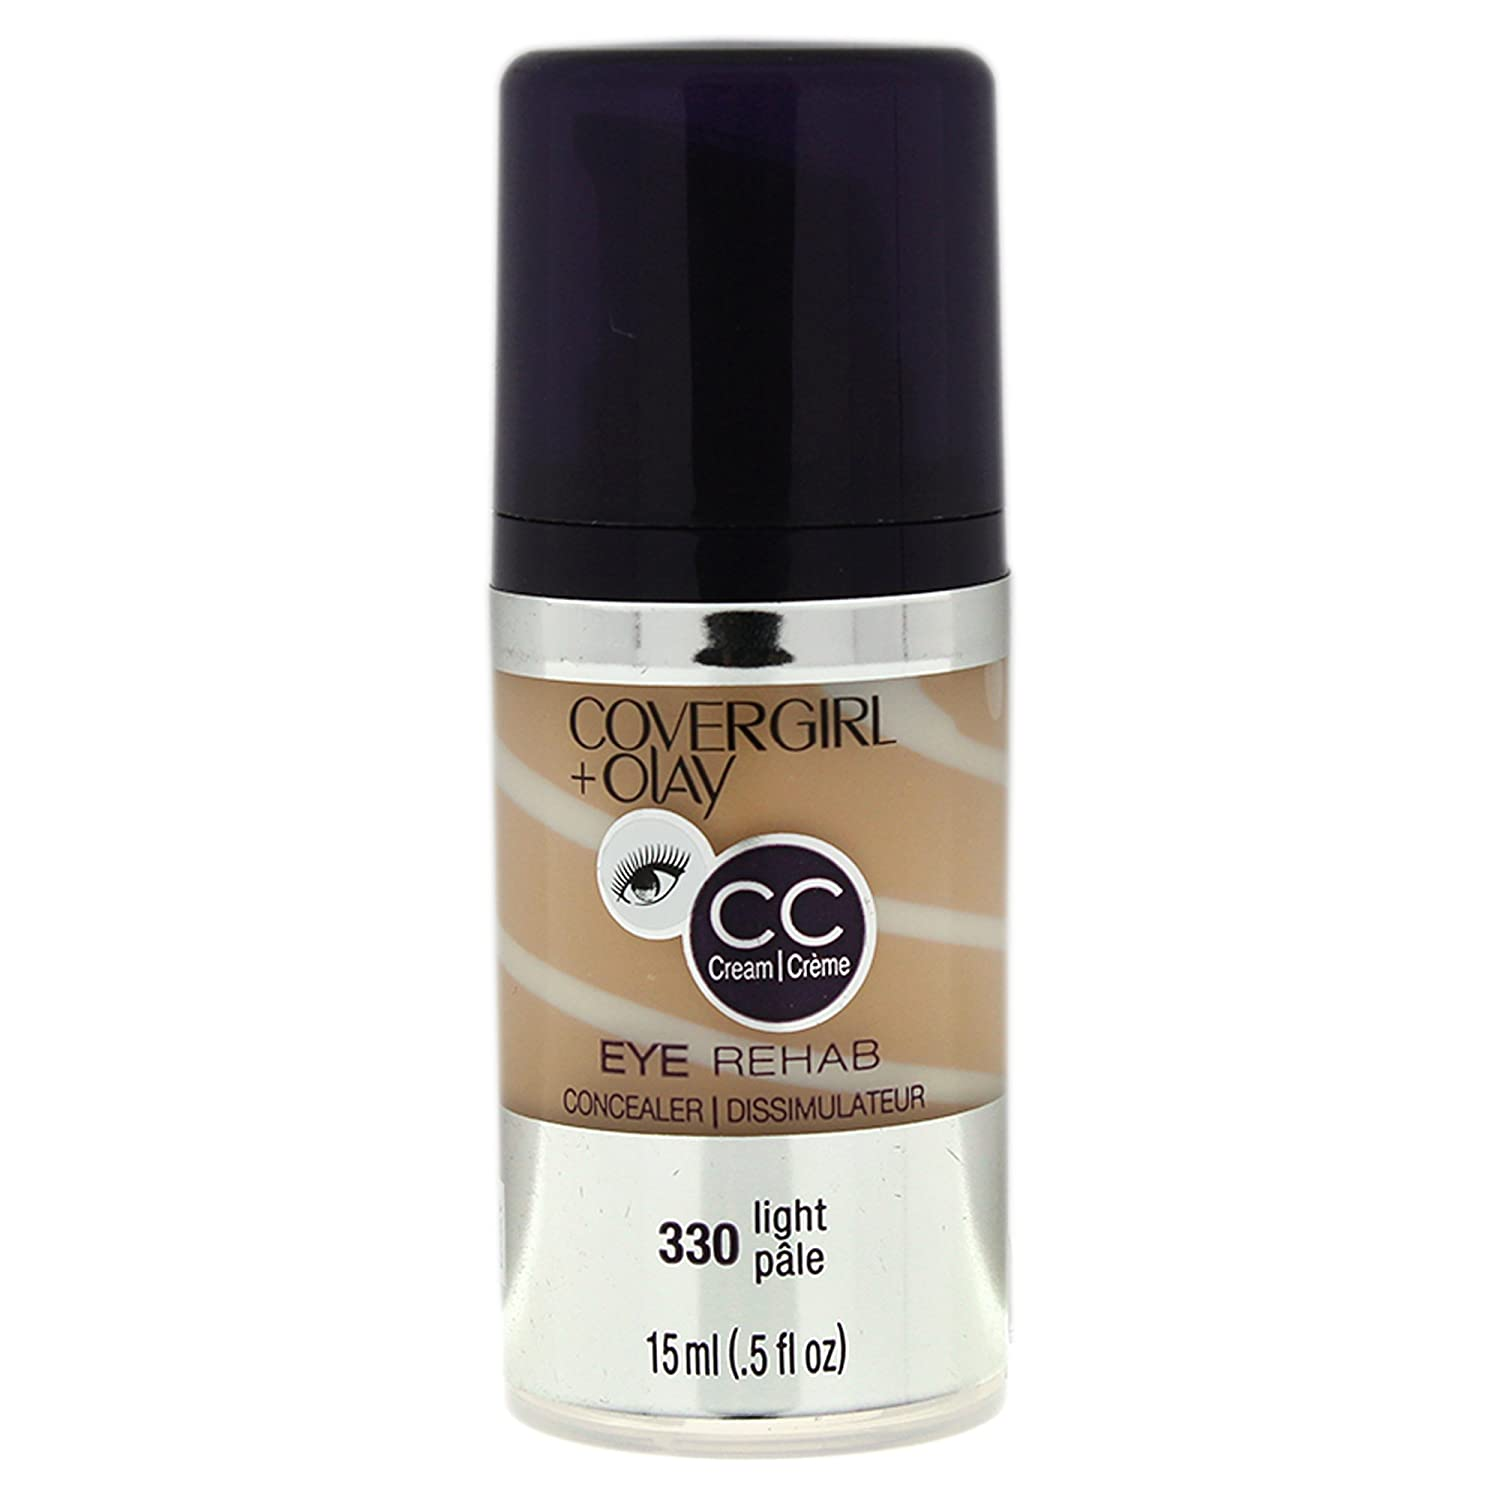 COVERGIRL + Olay Eye Rehab Concealer Light 330, .5 oz (packaging may vary)